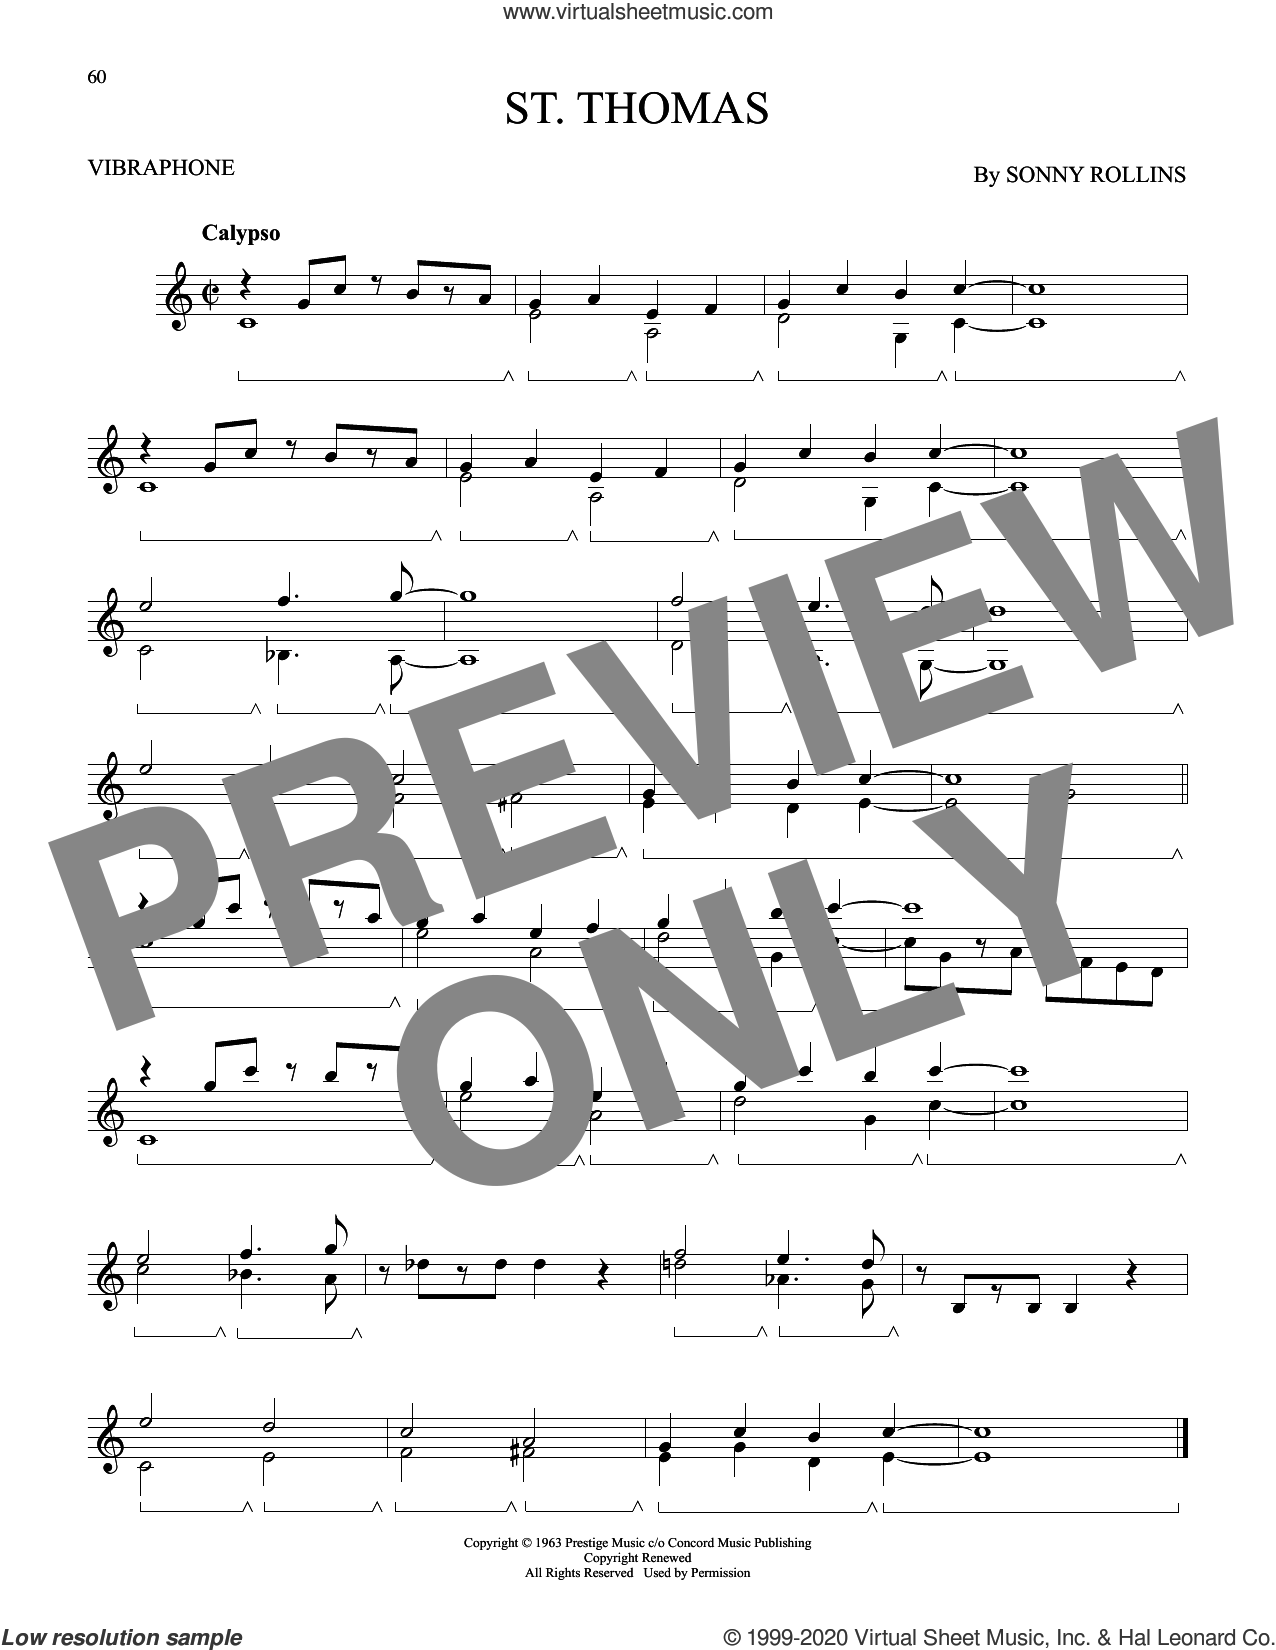 St. Thomas sheet music for Vibraphone Solo by Sonny Rollins, intermediate skill level